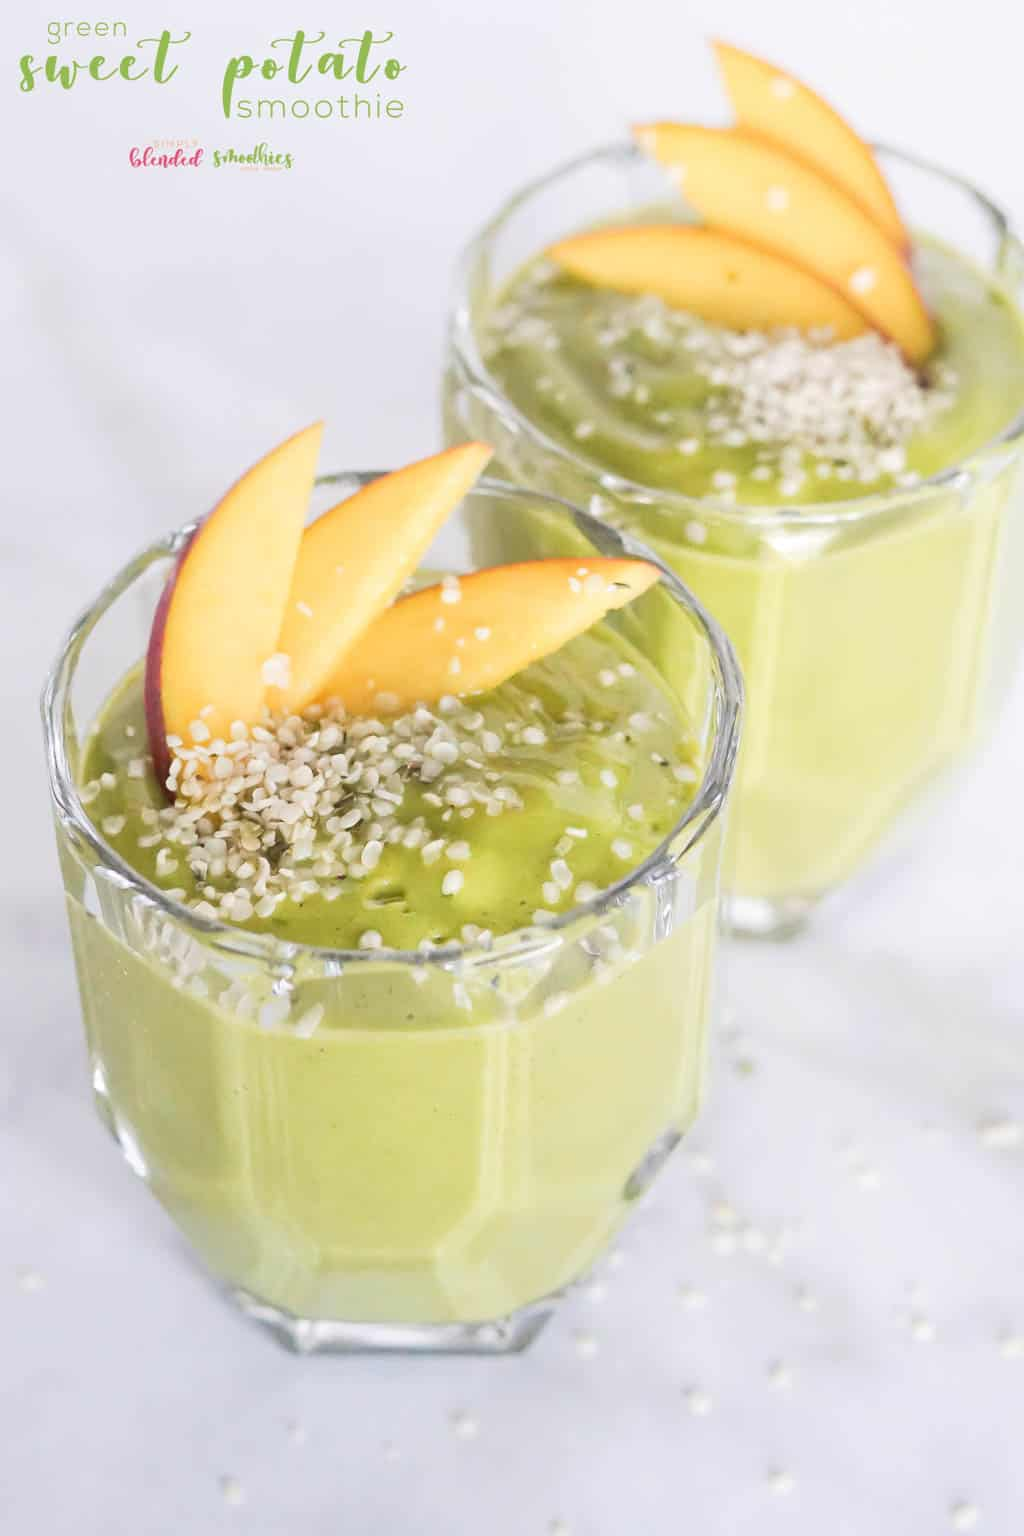 Green Sweet Potato Smoothie Recipe